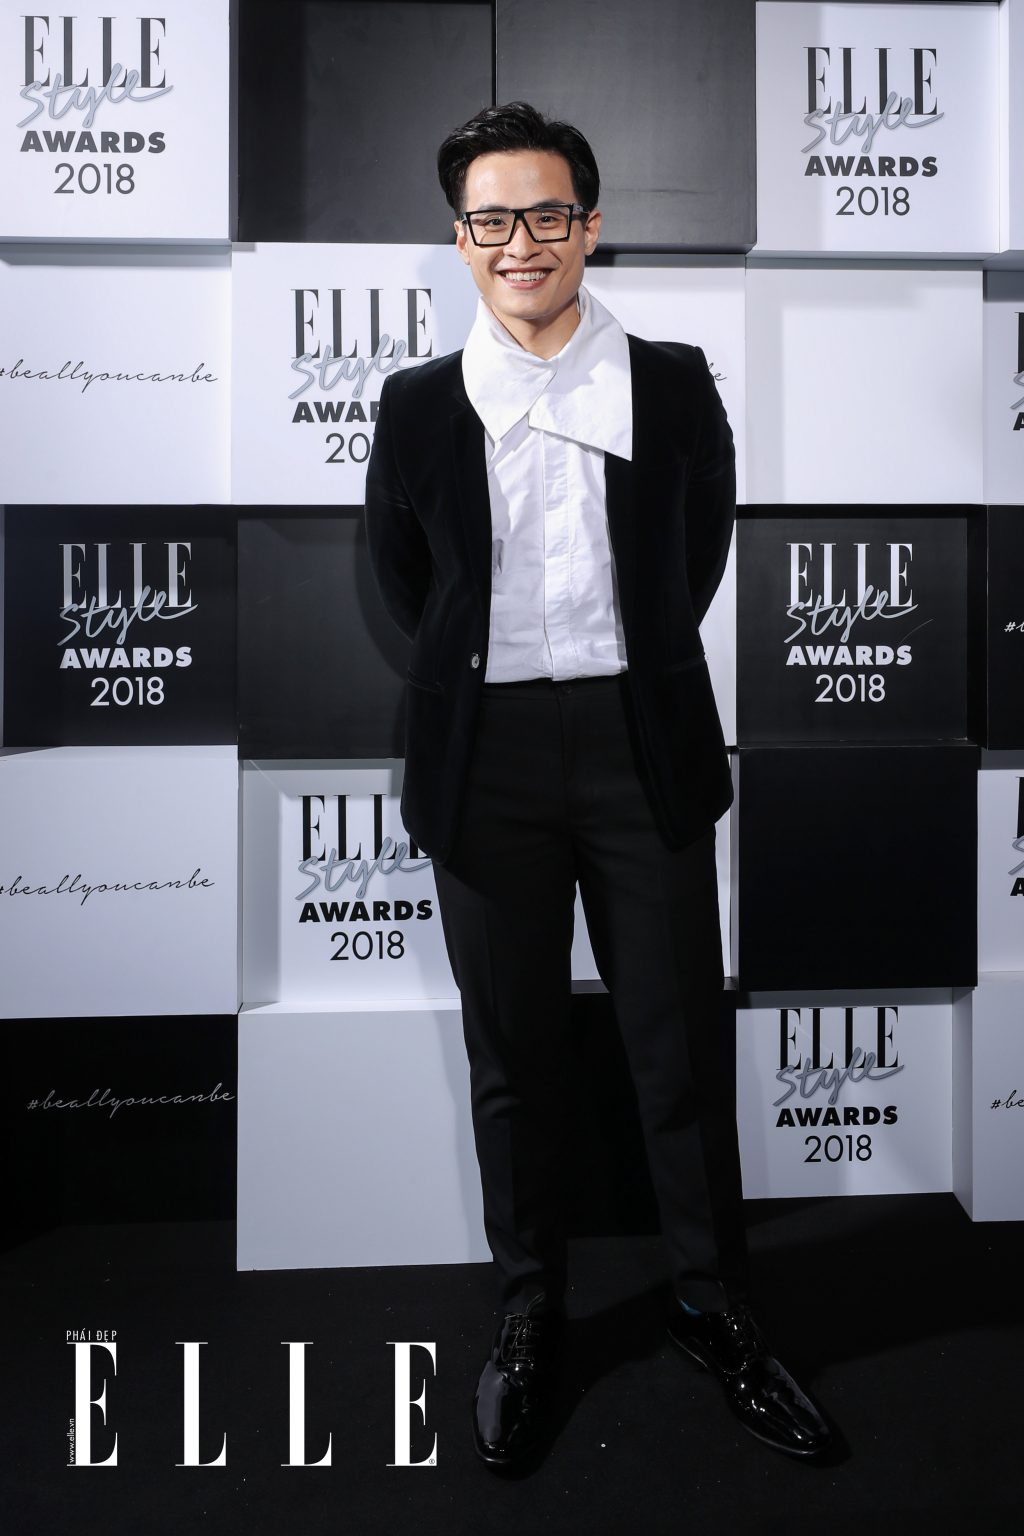 elle style awards hà anh tuấn 1